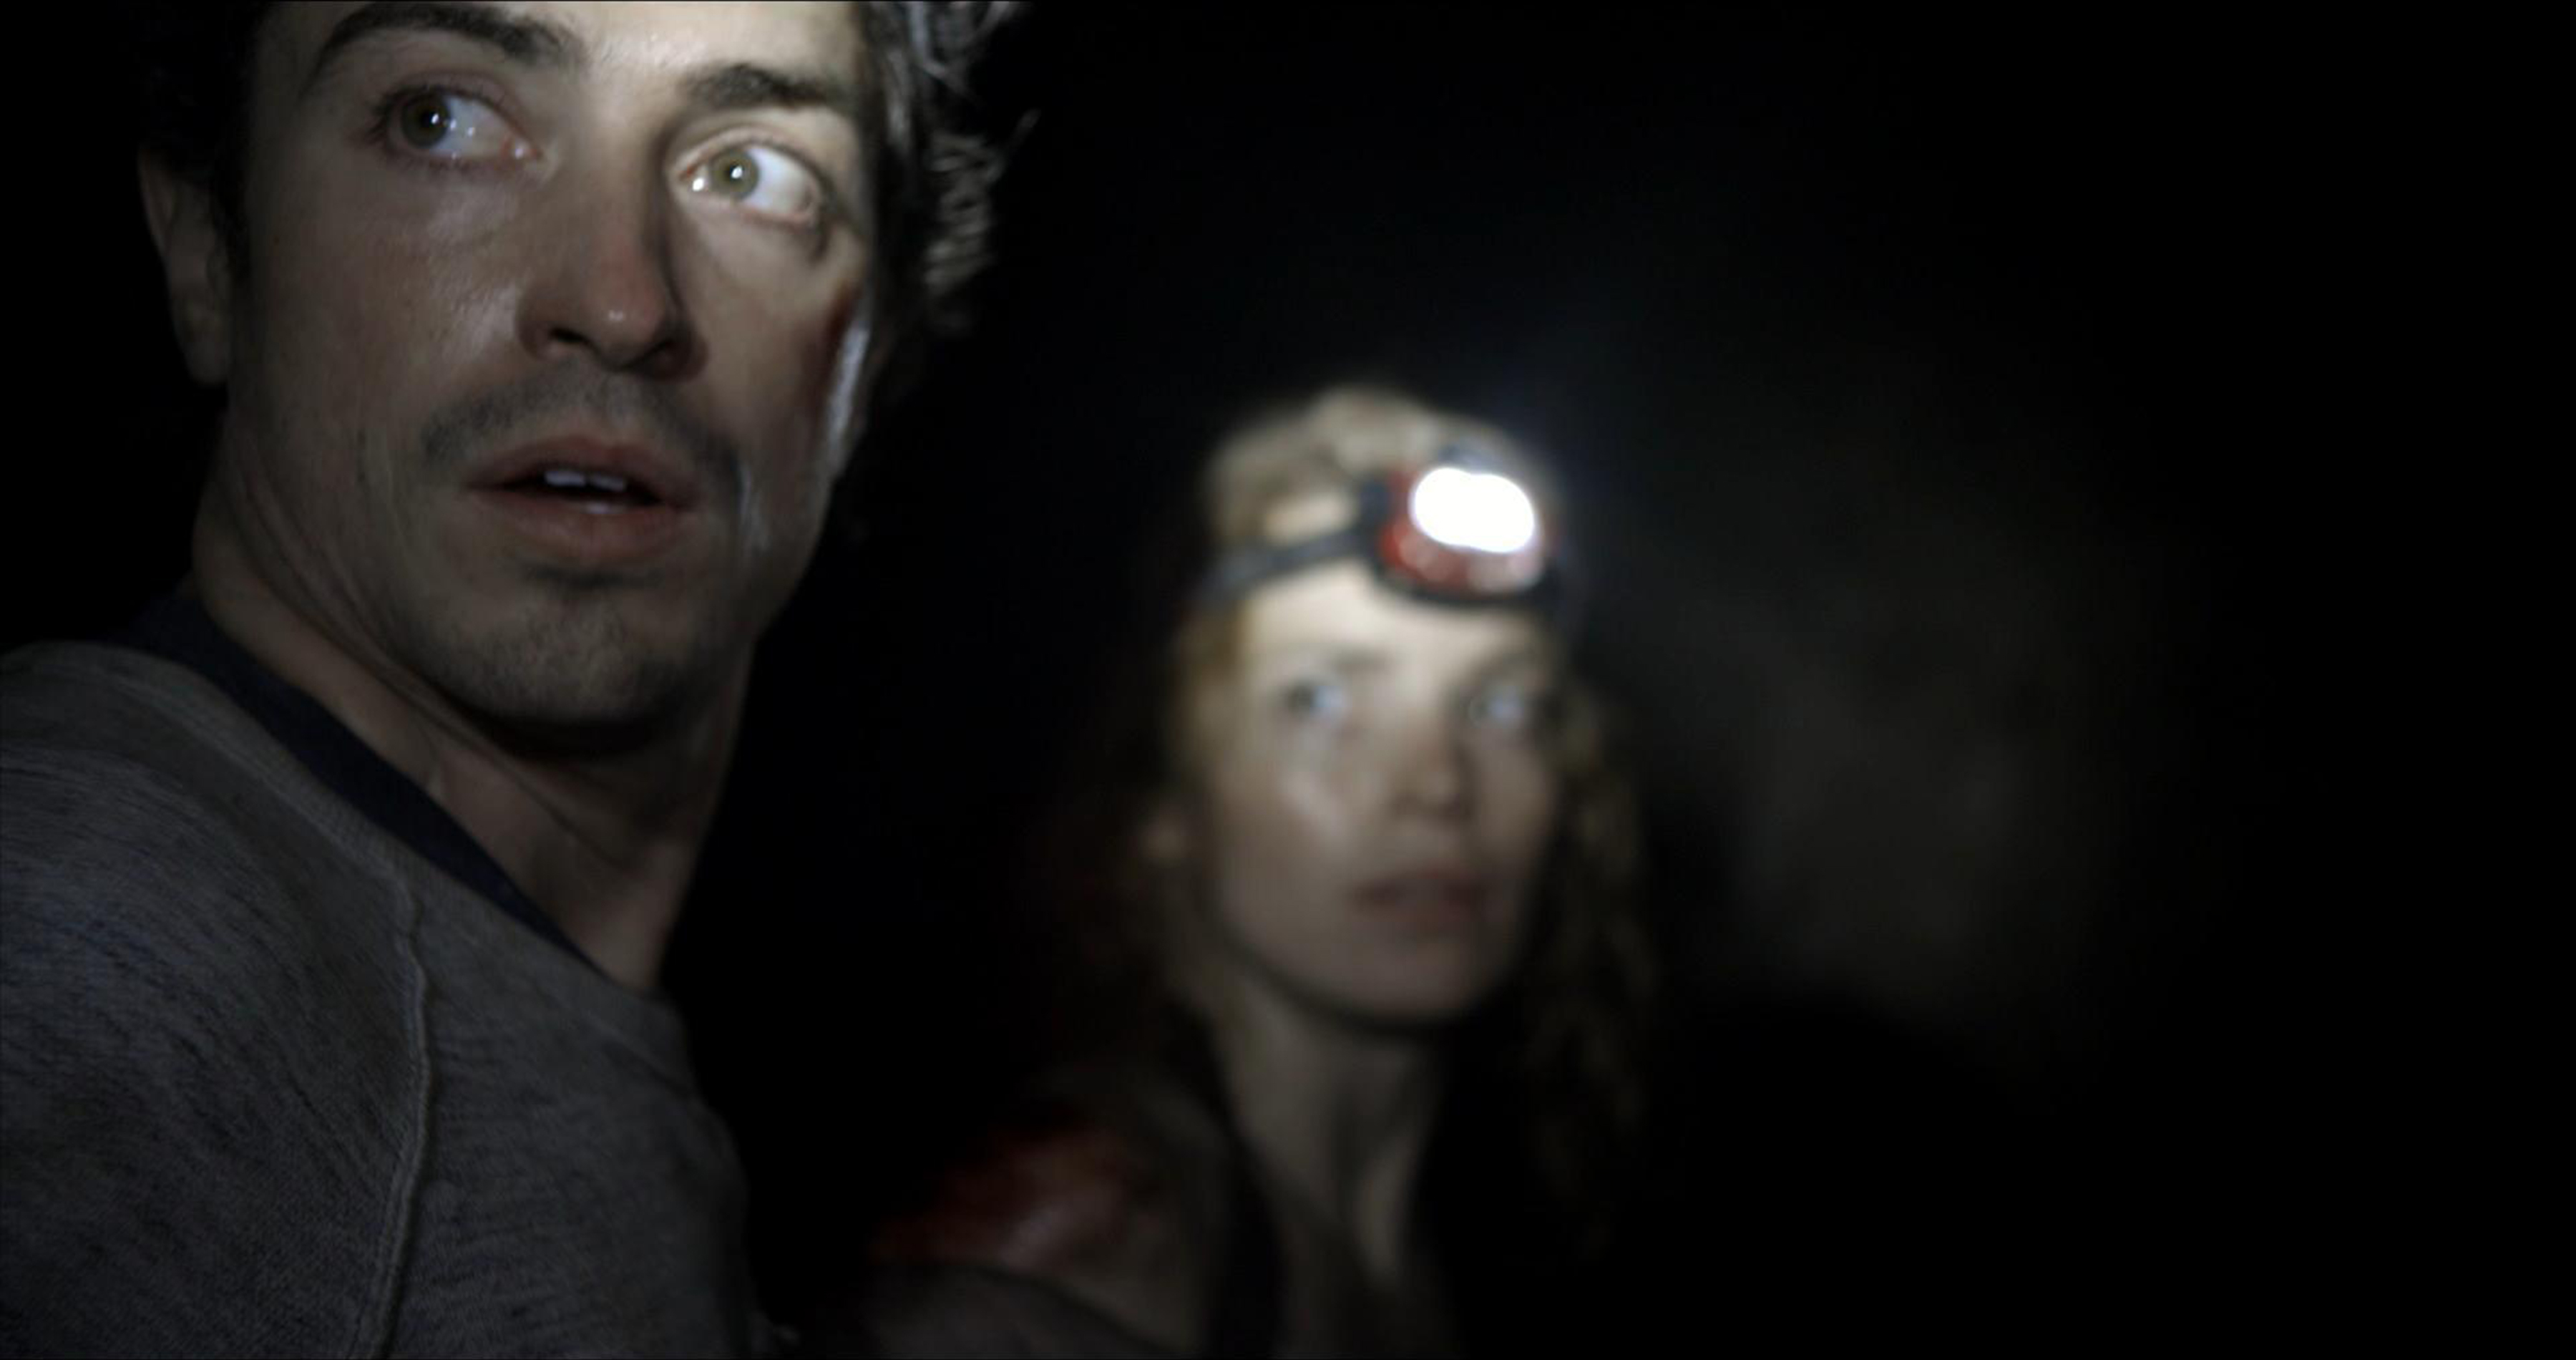 As Above, So Below pays poor homage to horror genre - The